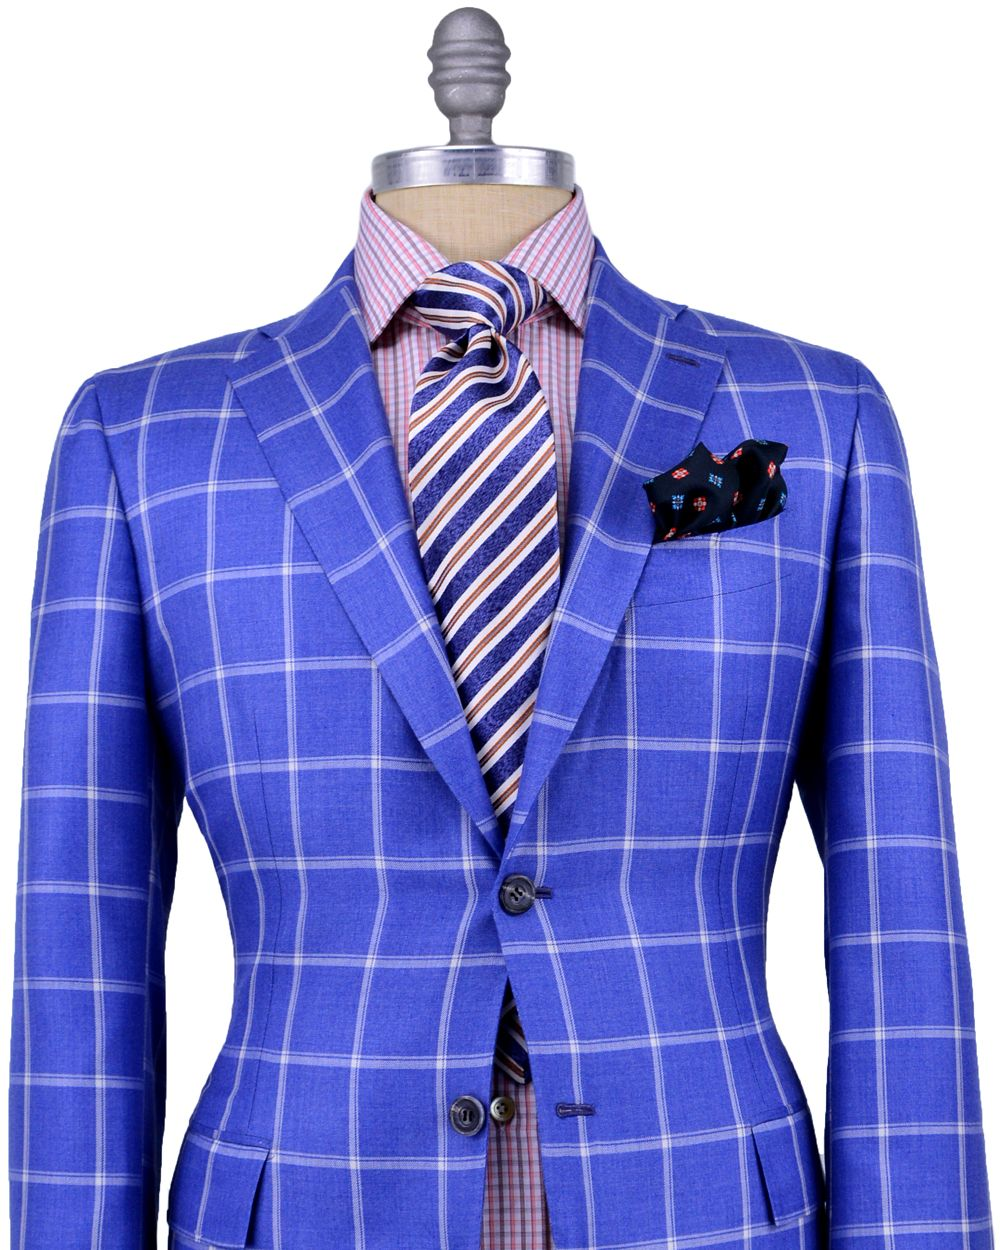 Kiton | Blue with White Windowpane Sportcoat | Apparel | Men's ...